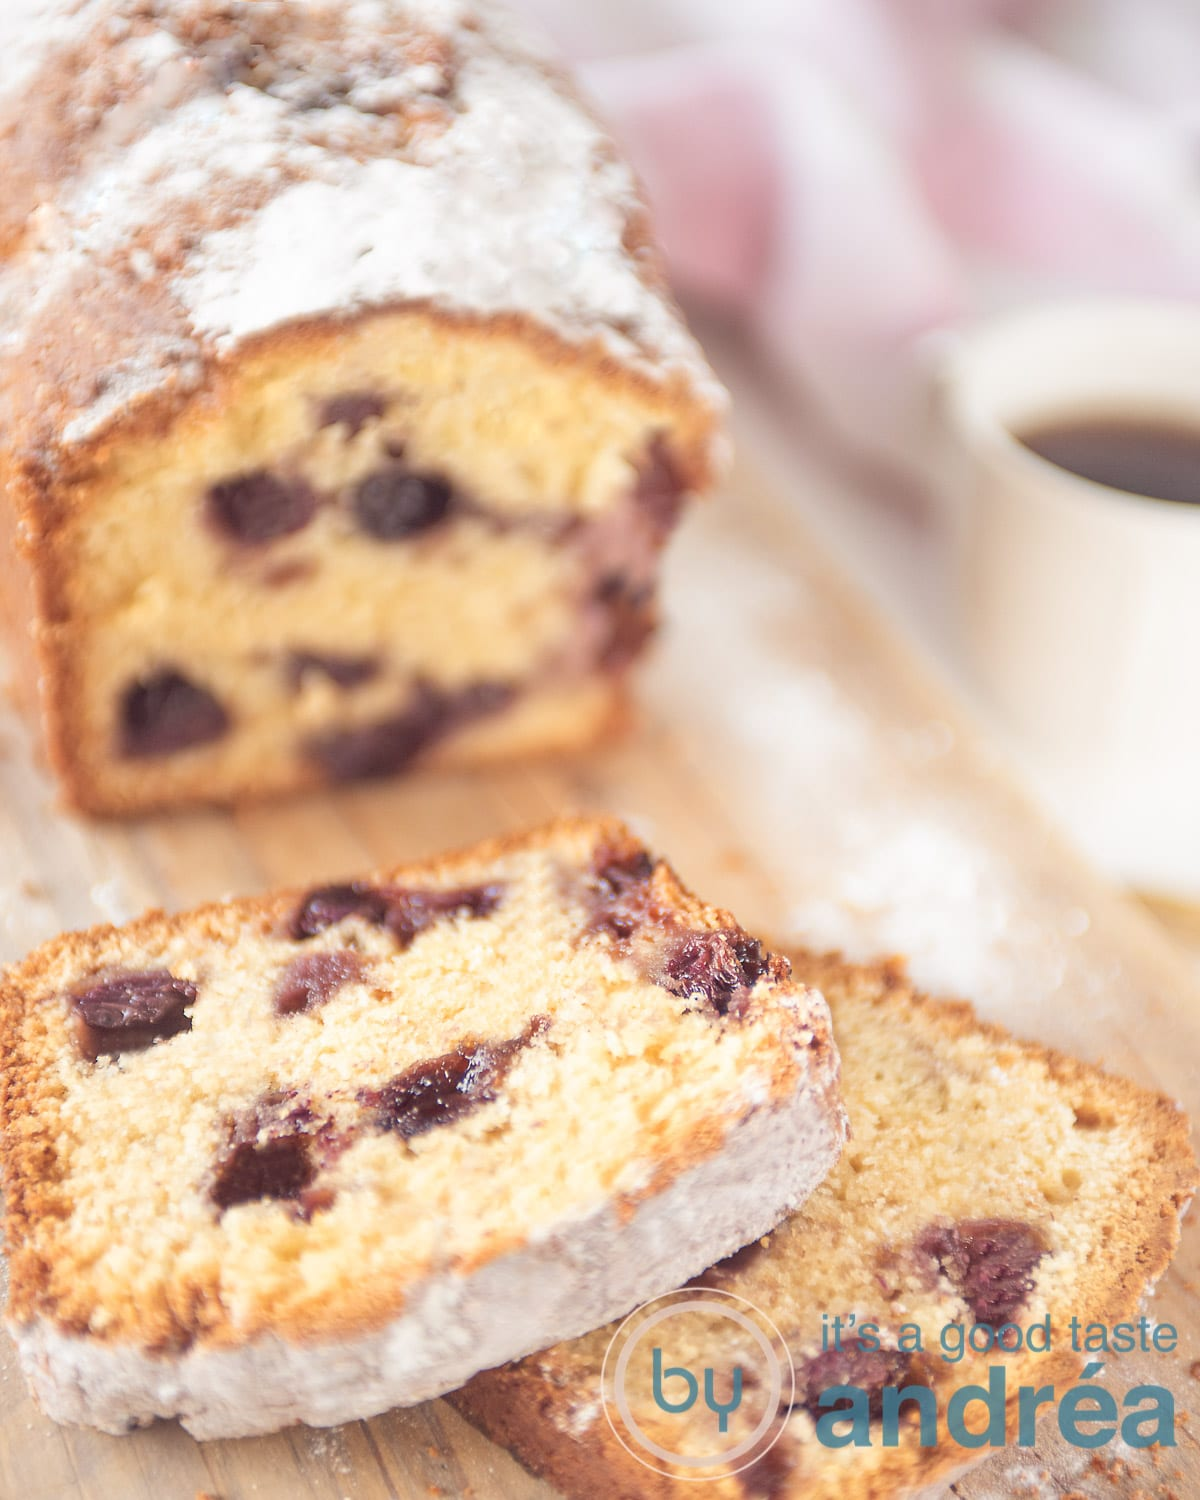 A wooden board with a cake with blueberries. Two slices off. A cup of coffee on the right